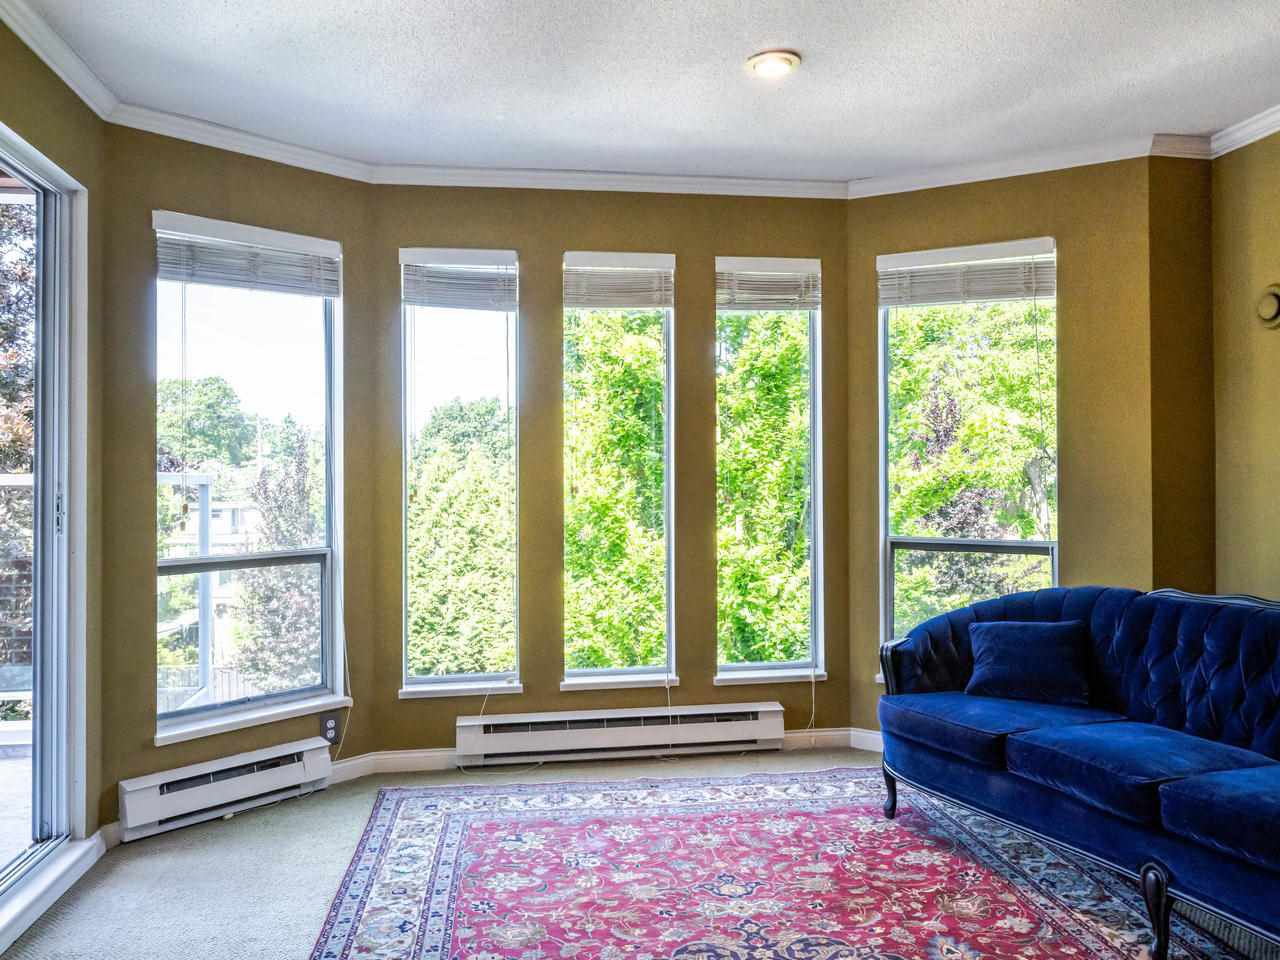 """Photo 8: Photos: 303 2288 W 12TH Avenue in Vancouver: Kitsilano Condo for sale in """"Connaught Point"""" (Vancouver West)  : MLS®# R2494985"""